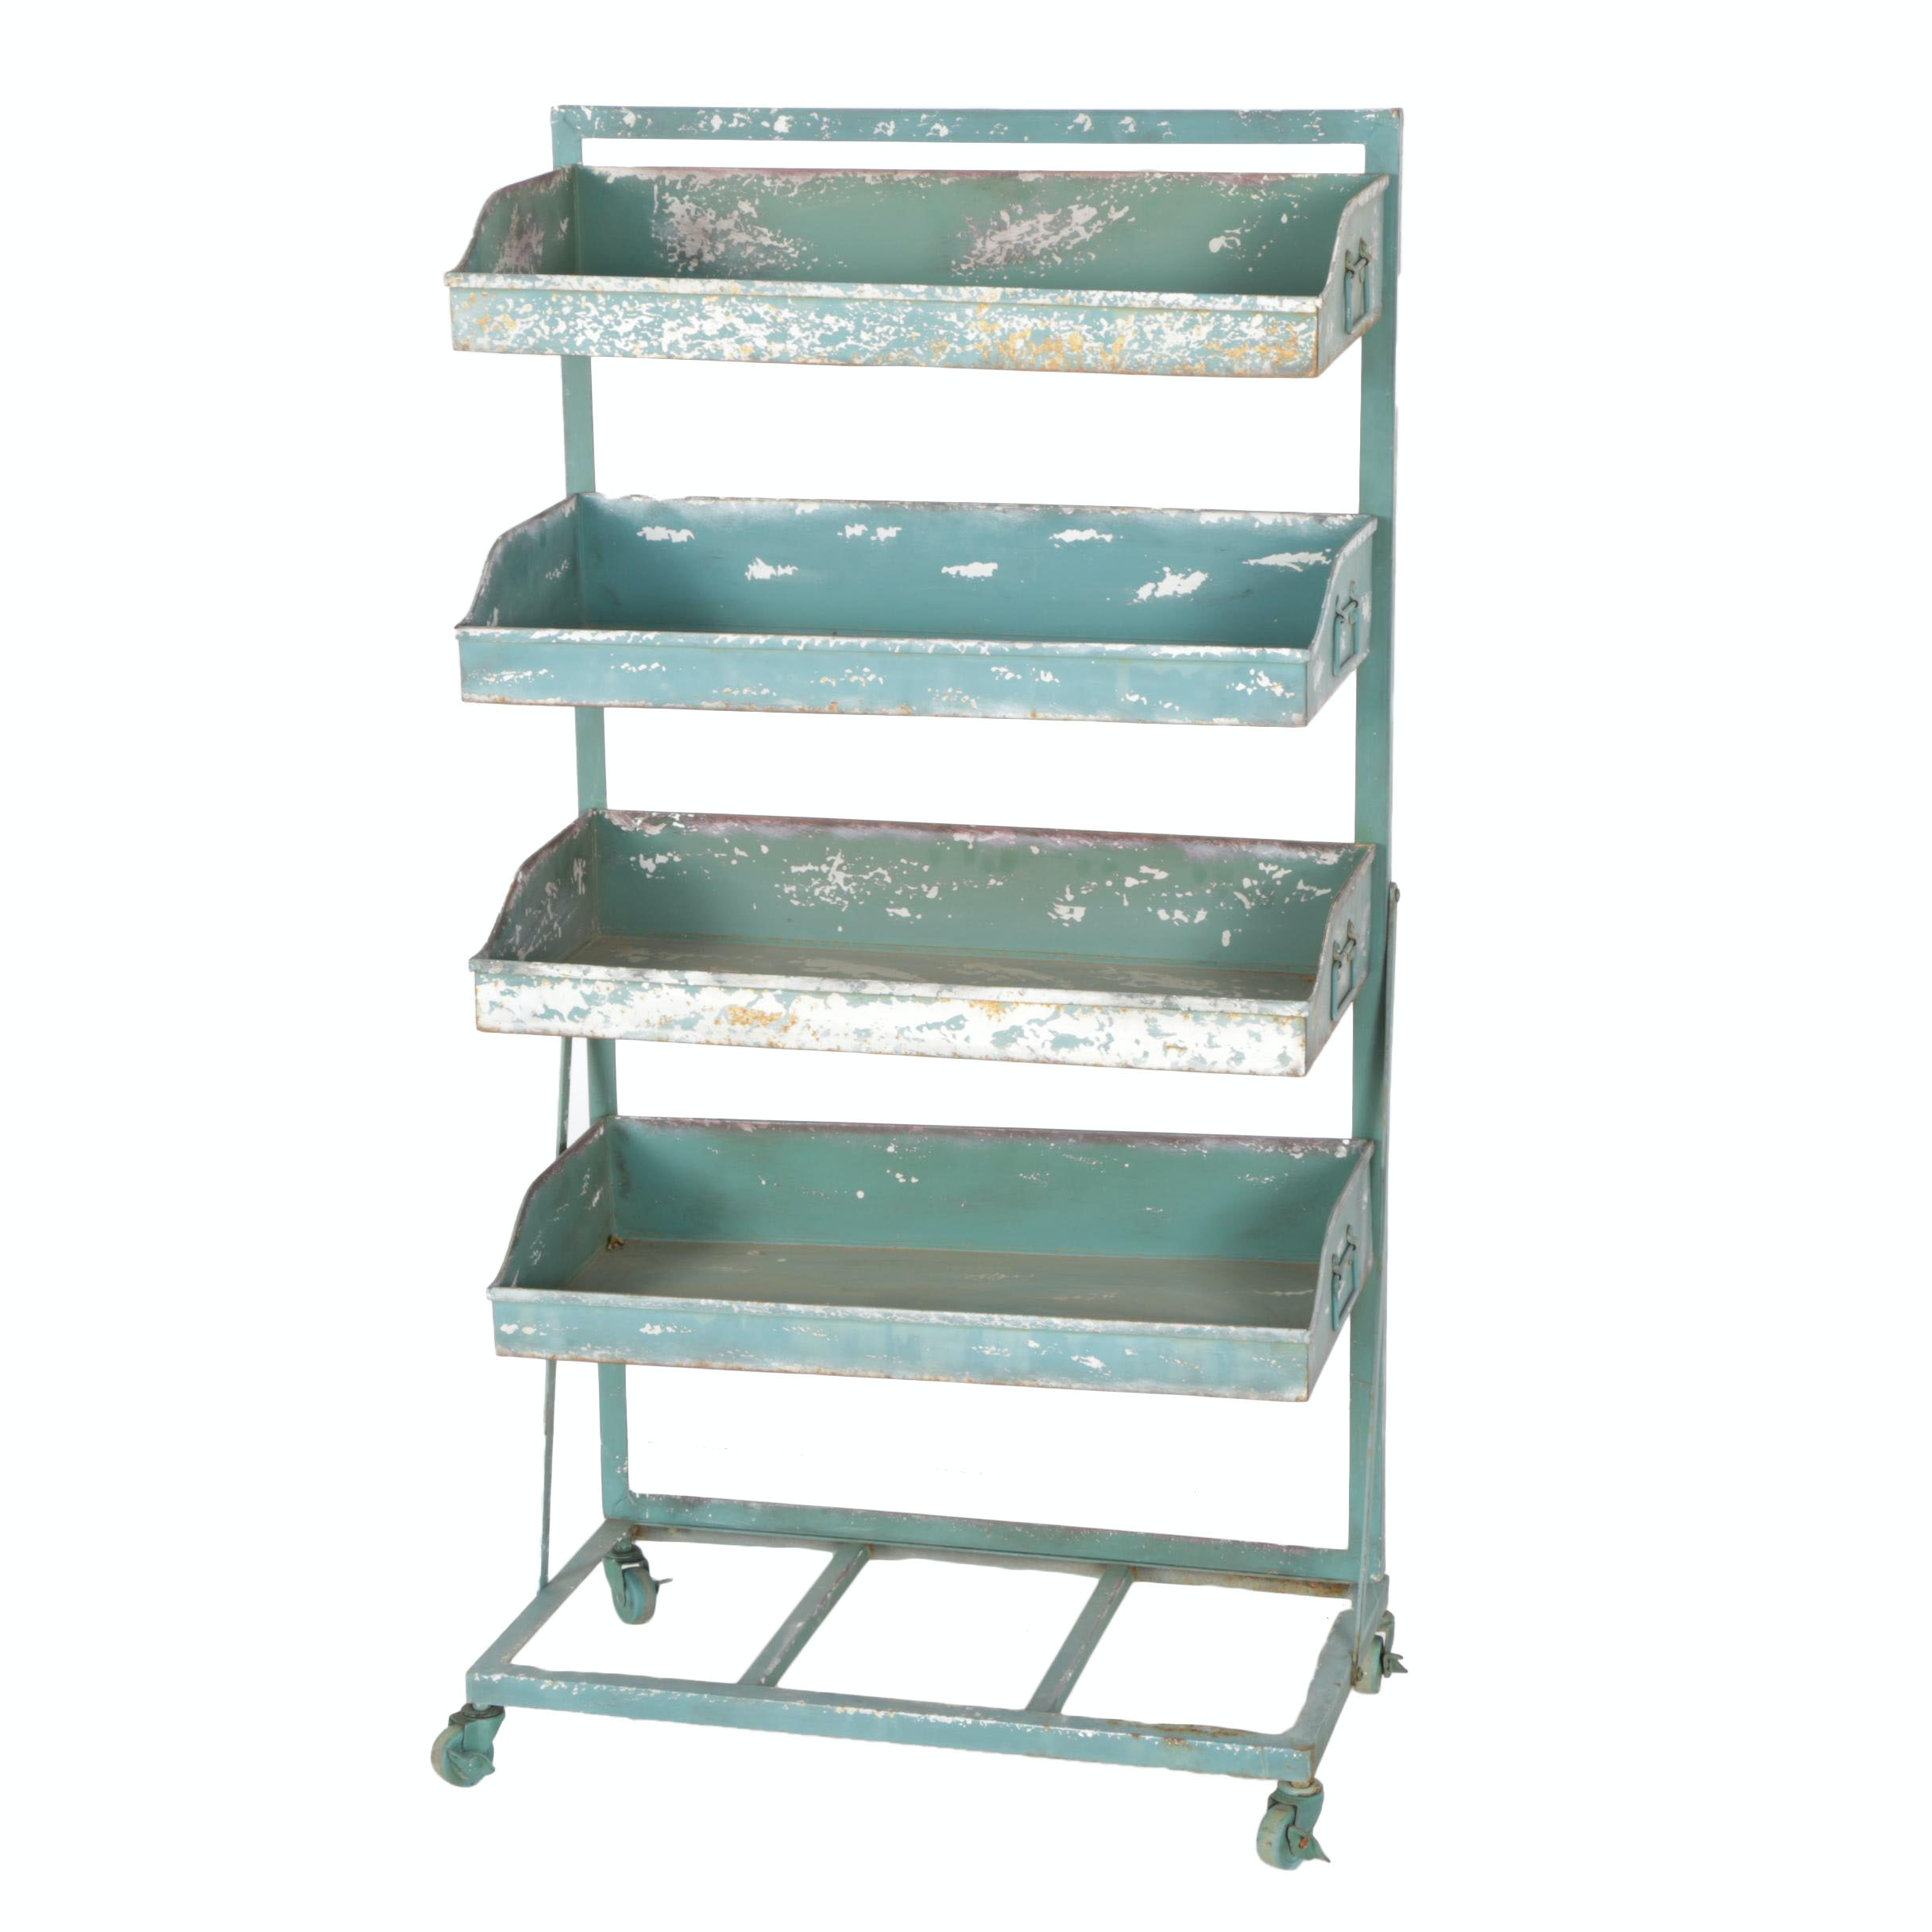 Industrial Cart with Shelves in Green Paint